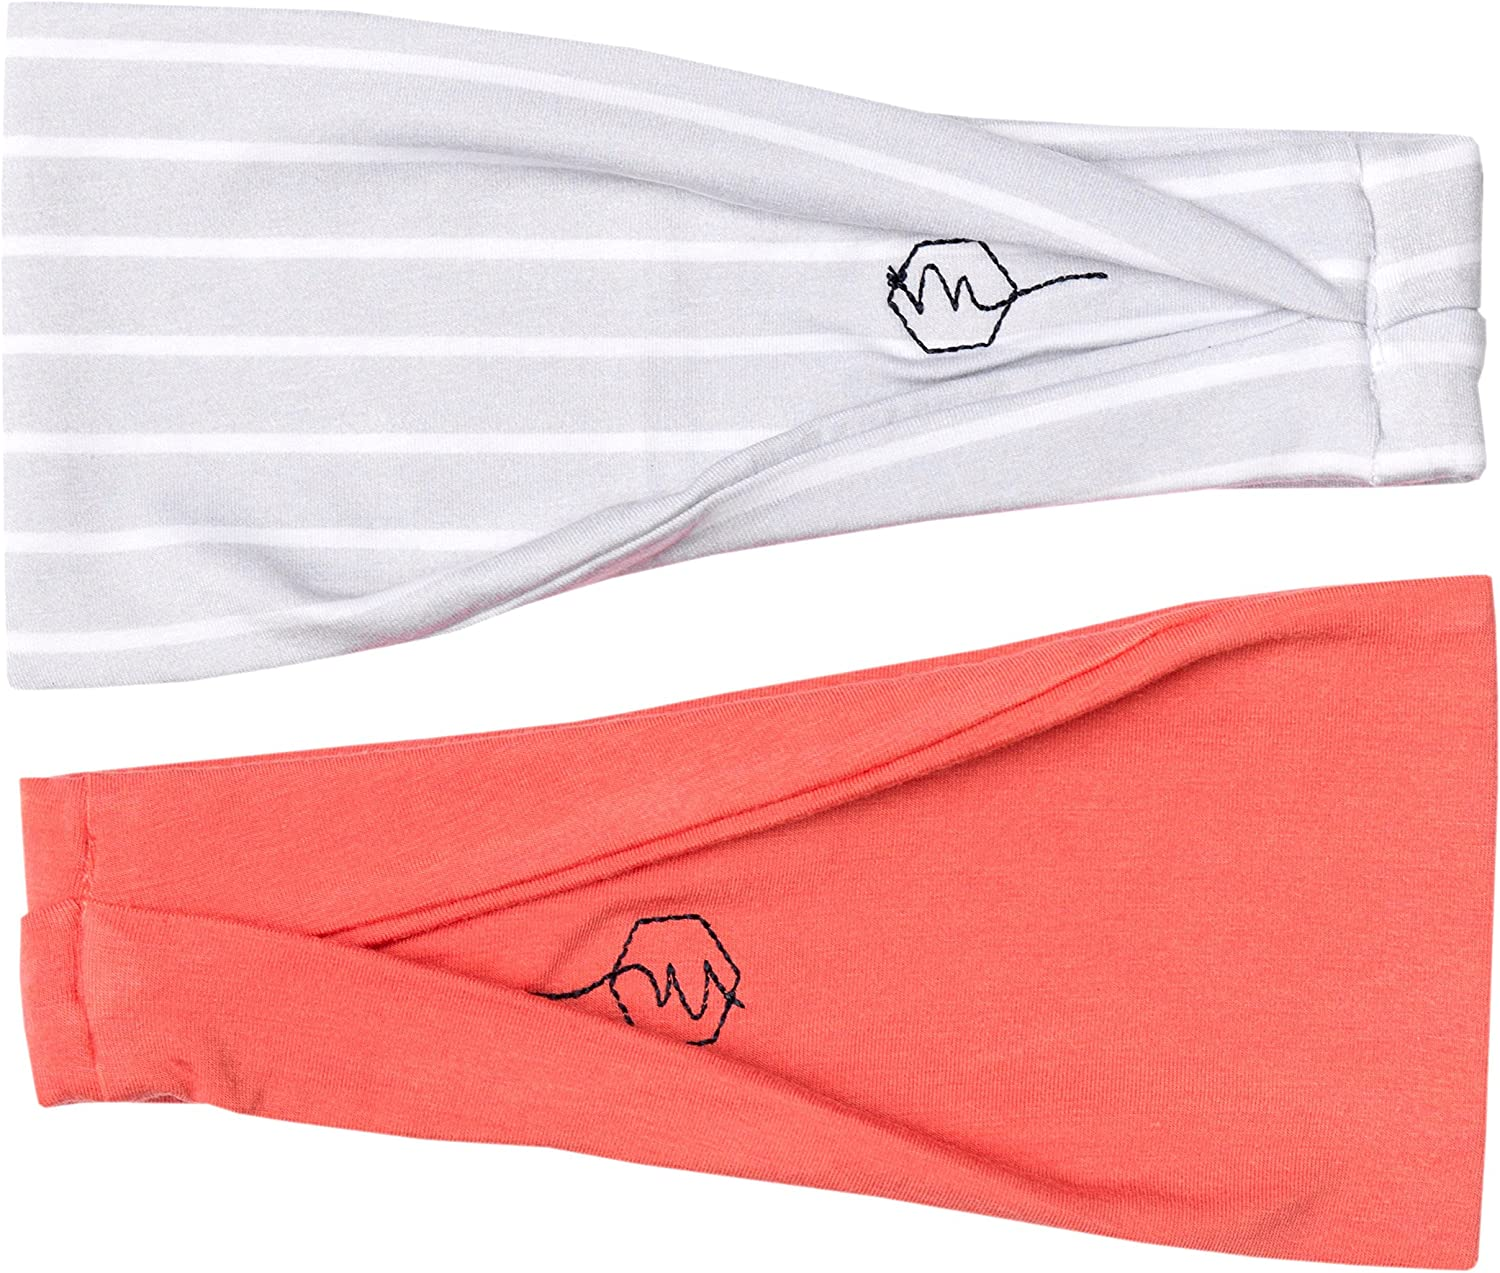 Maven Thread Womens Bow Headband Yoga Running Exercise Sports Workout Athletic Gym Wide Sweat Wicking Stretchy No Slip 2 Pack Set Medical Nurse Doctor Nightingale Bow